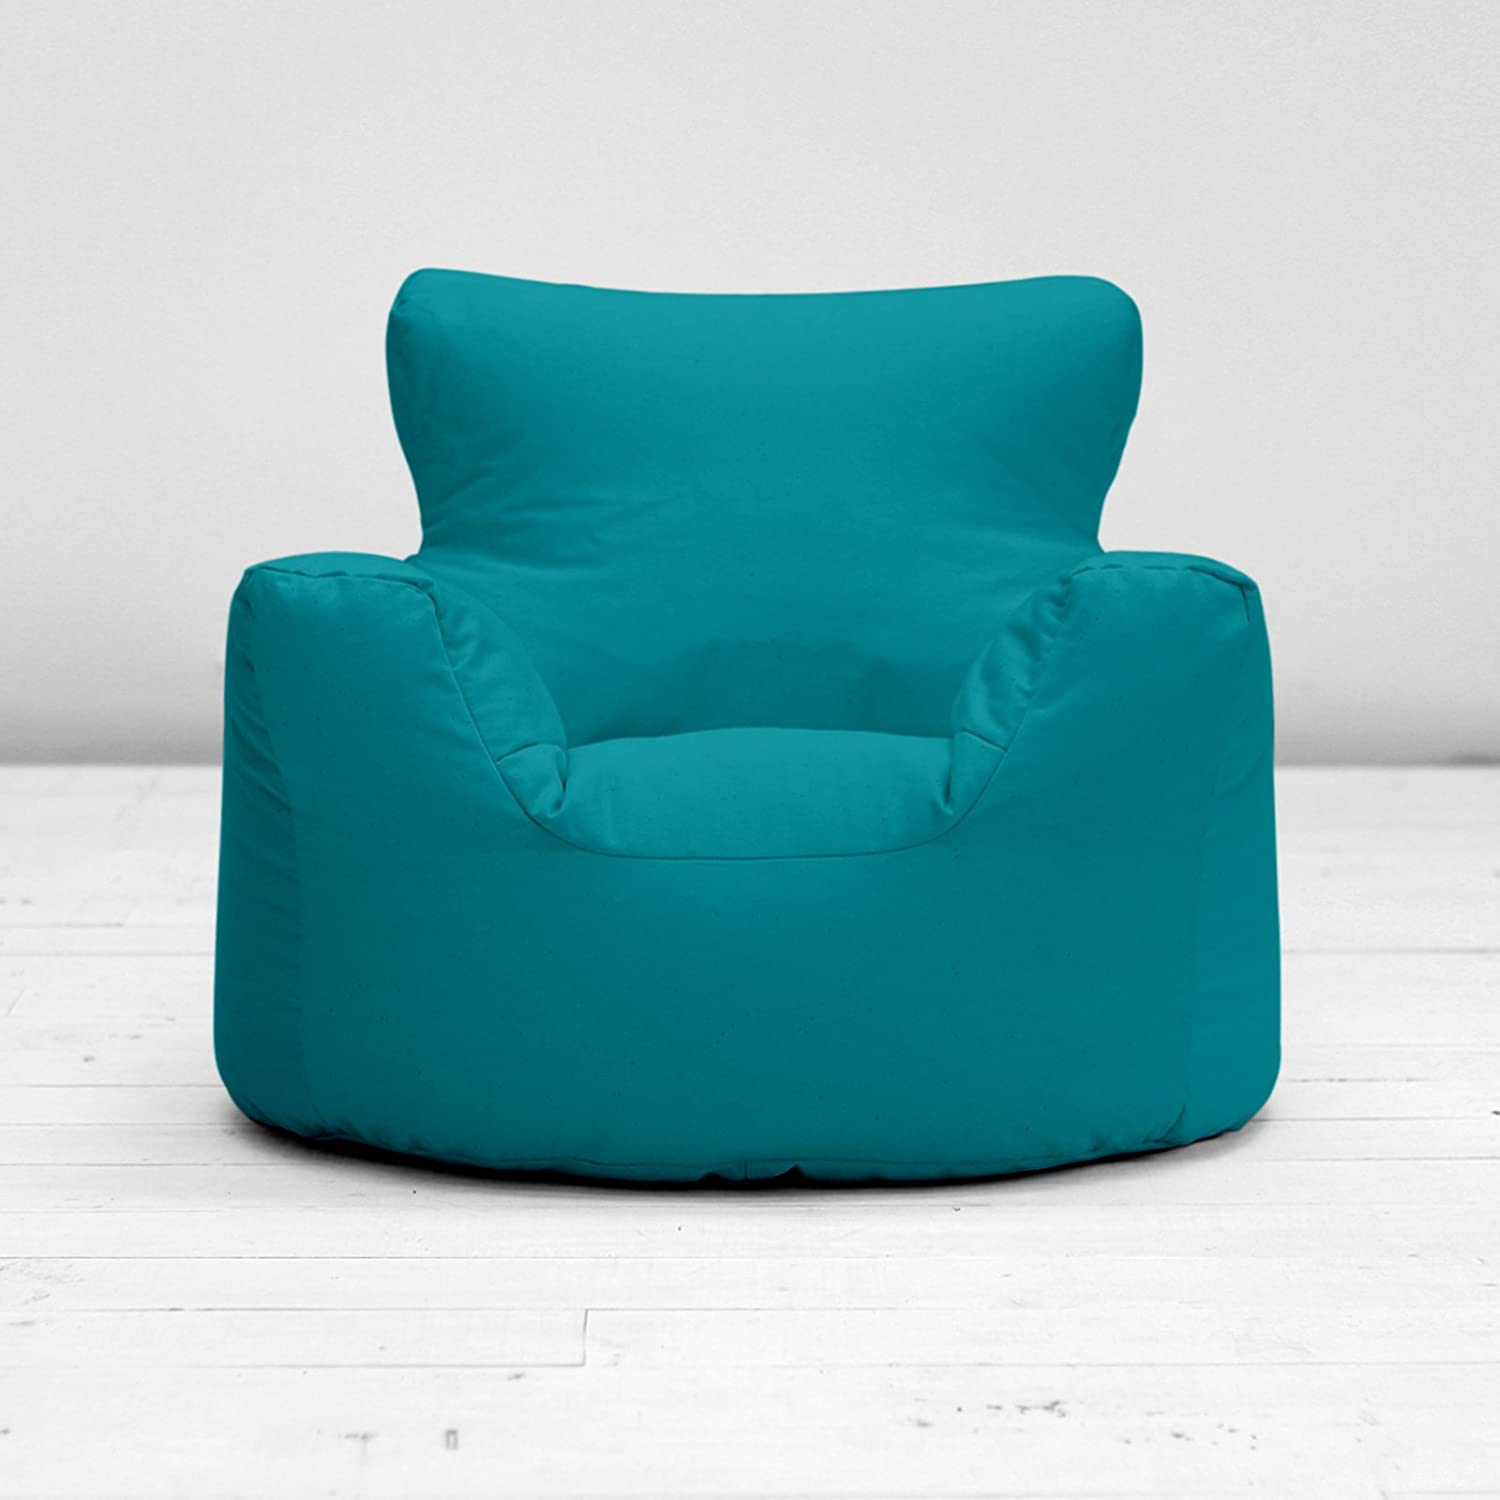 Childrens Kids Teal Blue Green Cotton Small Chair Seat Beanbag Bean Bag  Filled: Amazon.co.uk: Kitchen & Home - Childrens Kids Teal Blue Green Cotton Small Chair Seat Beanbag